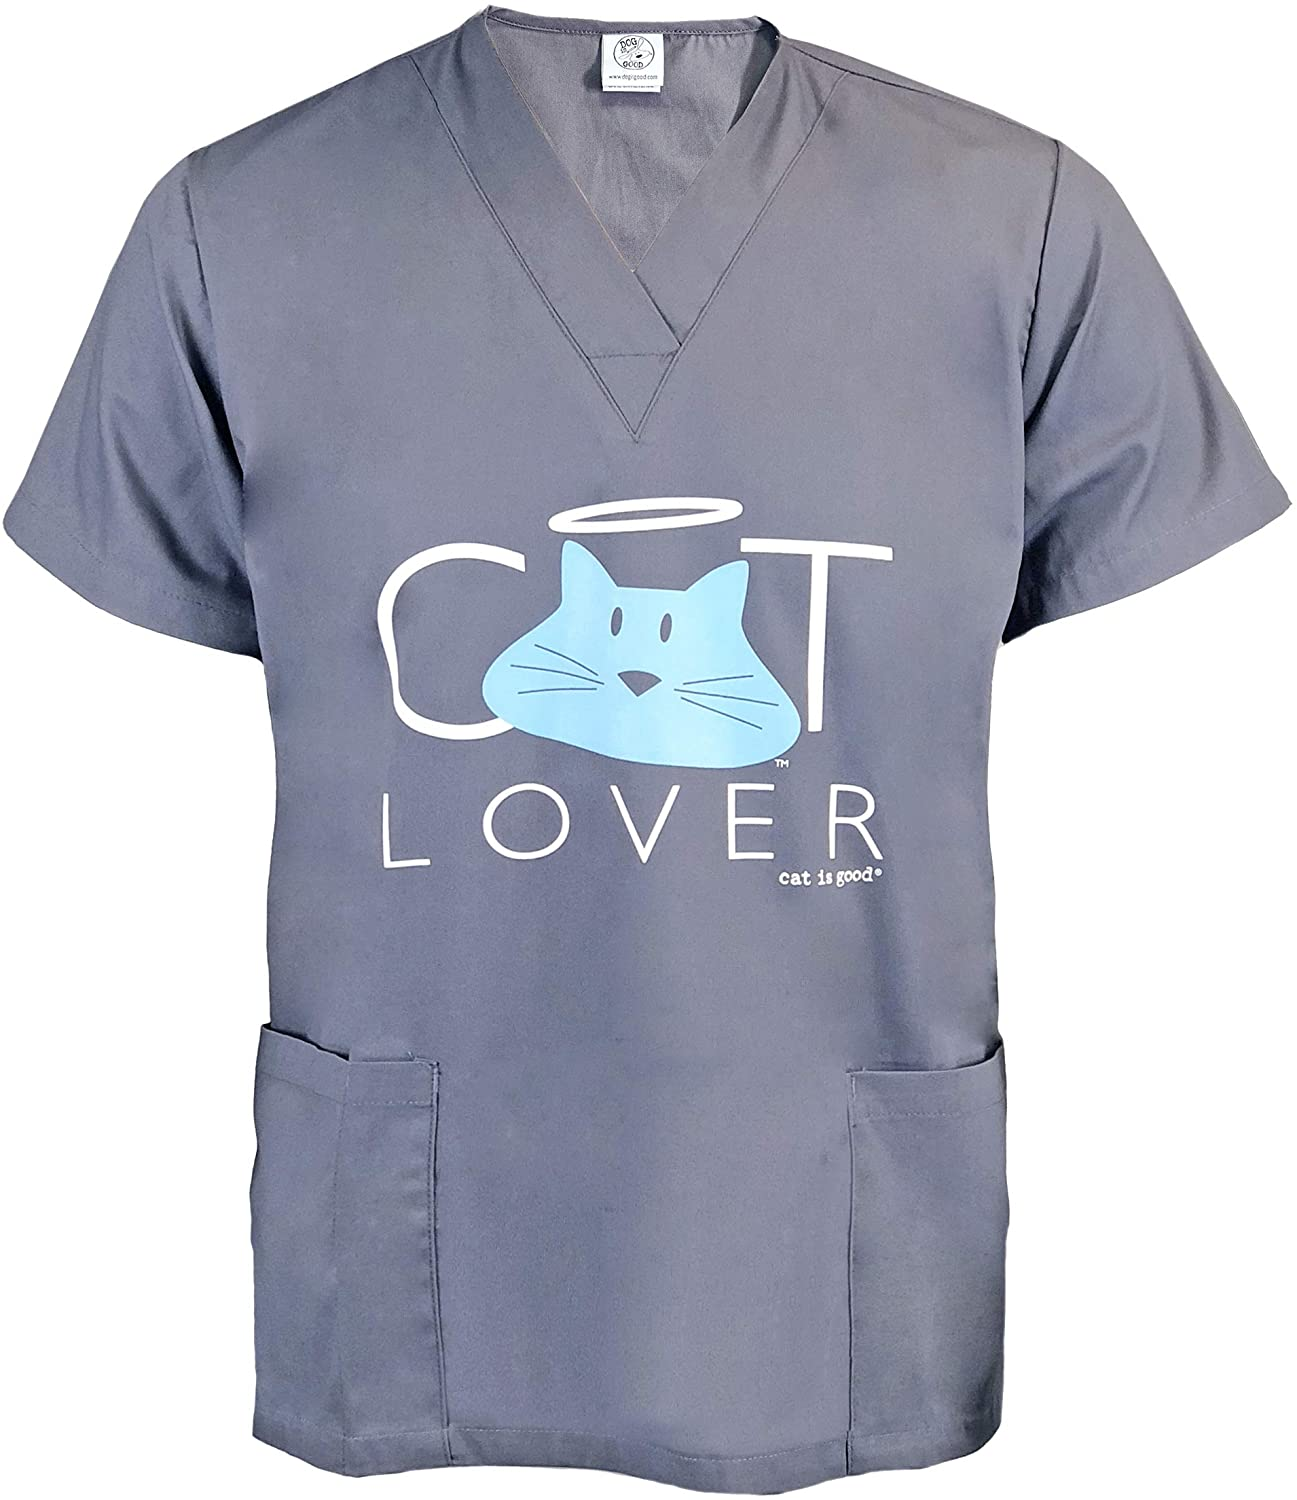 Dog is Good Scrub Top Cat Lover - Great Gift for Cat Lovers, Made with High Premium Materials, for Men and Women